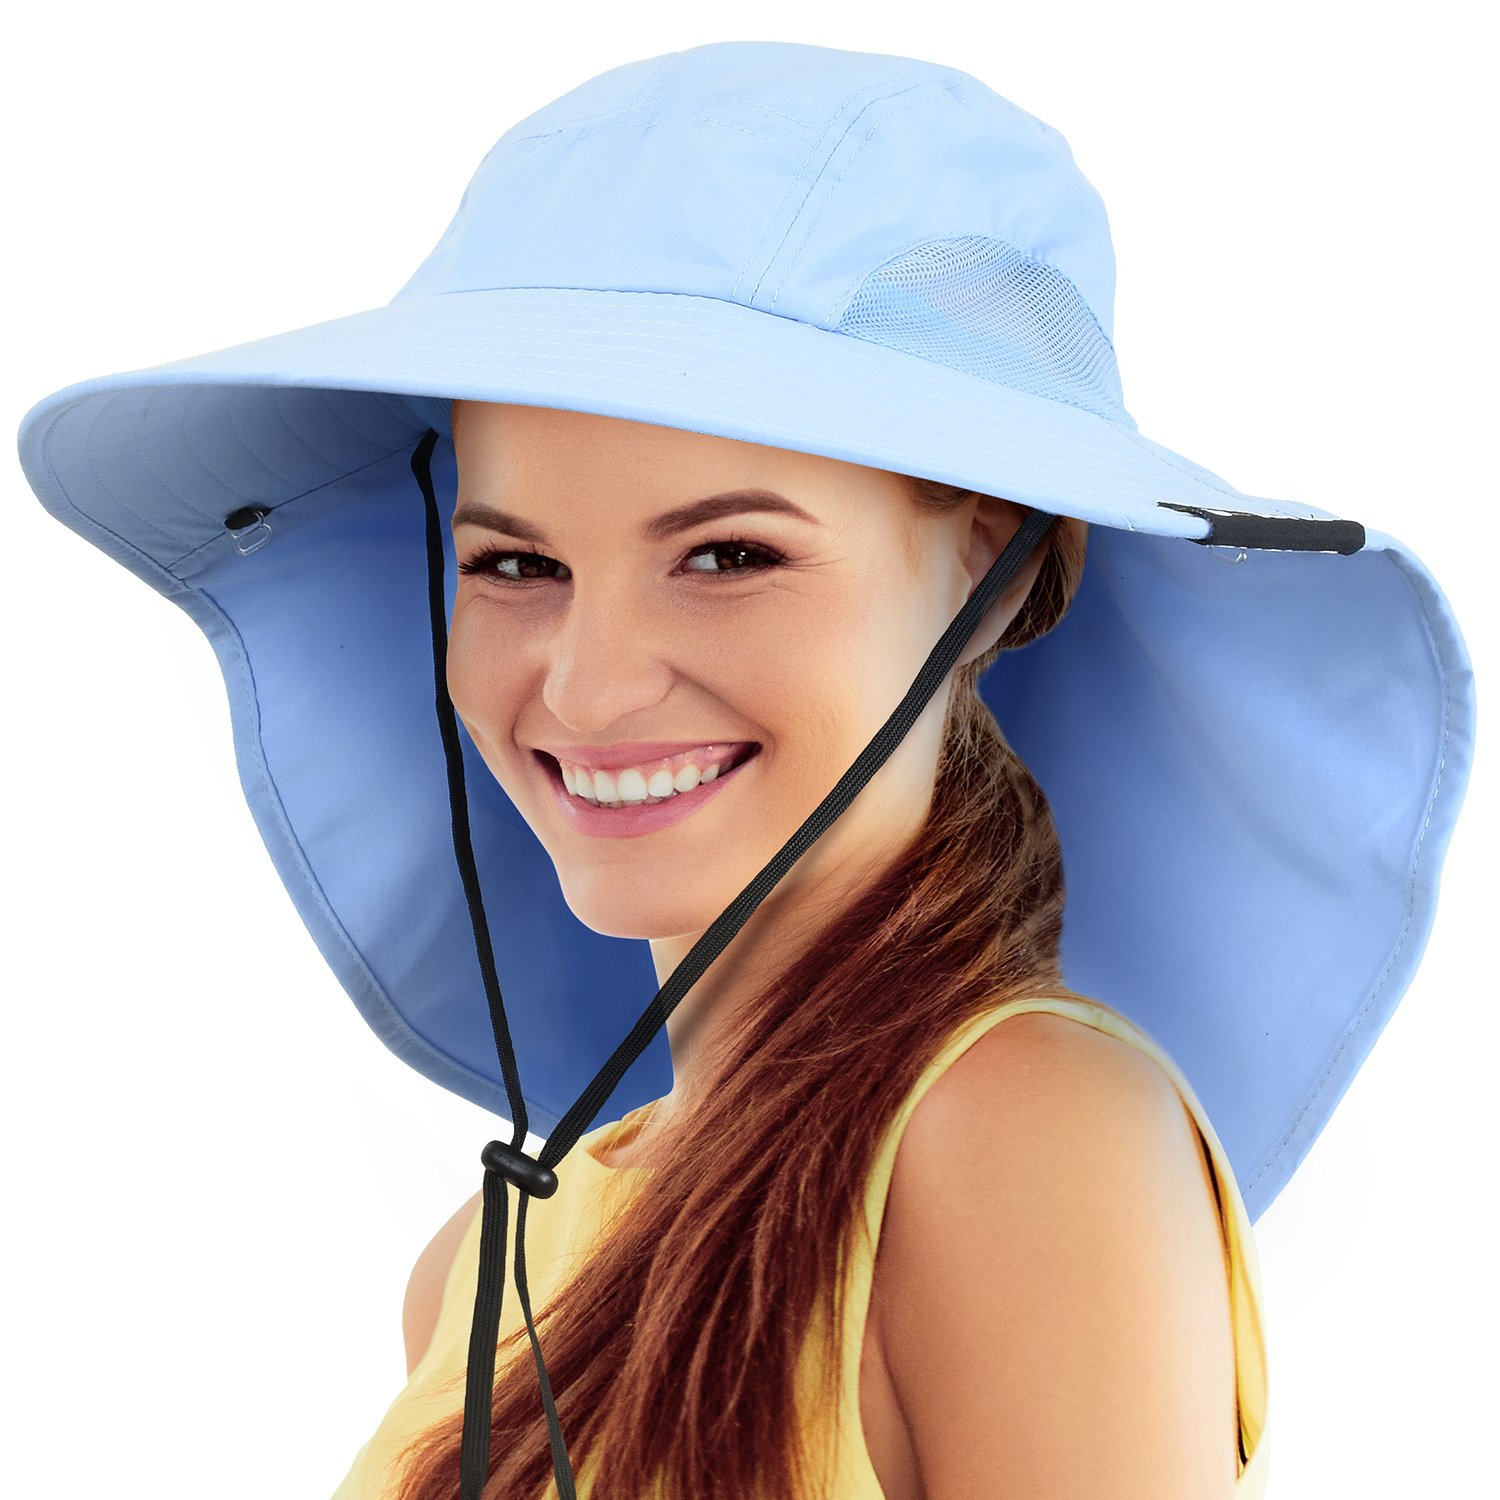 Safari Sun Hats for Women Fishing Hiking Cap with Neck Flap Wide Brim Hat  Blue at Amazon Women s Clothing store  10aaed0c8f43